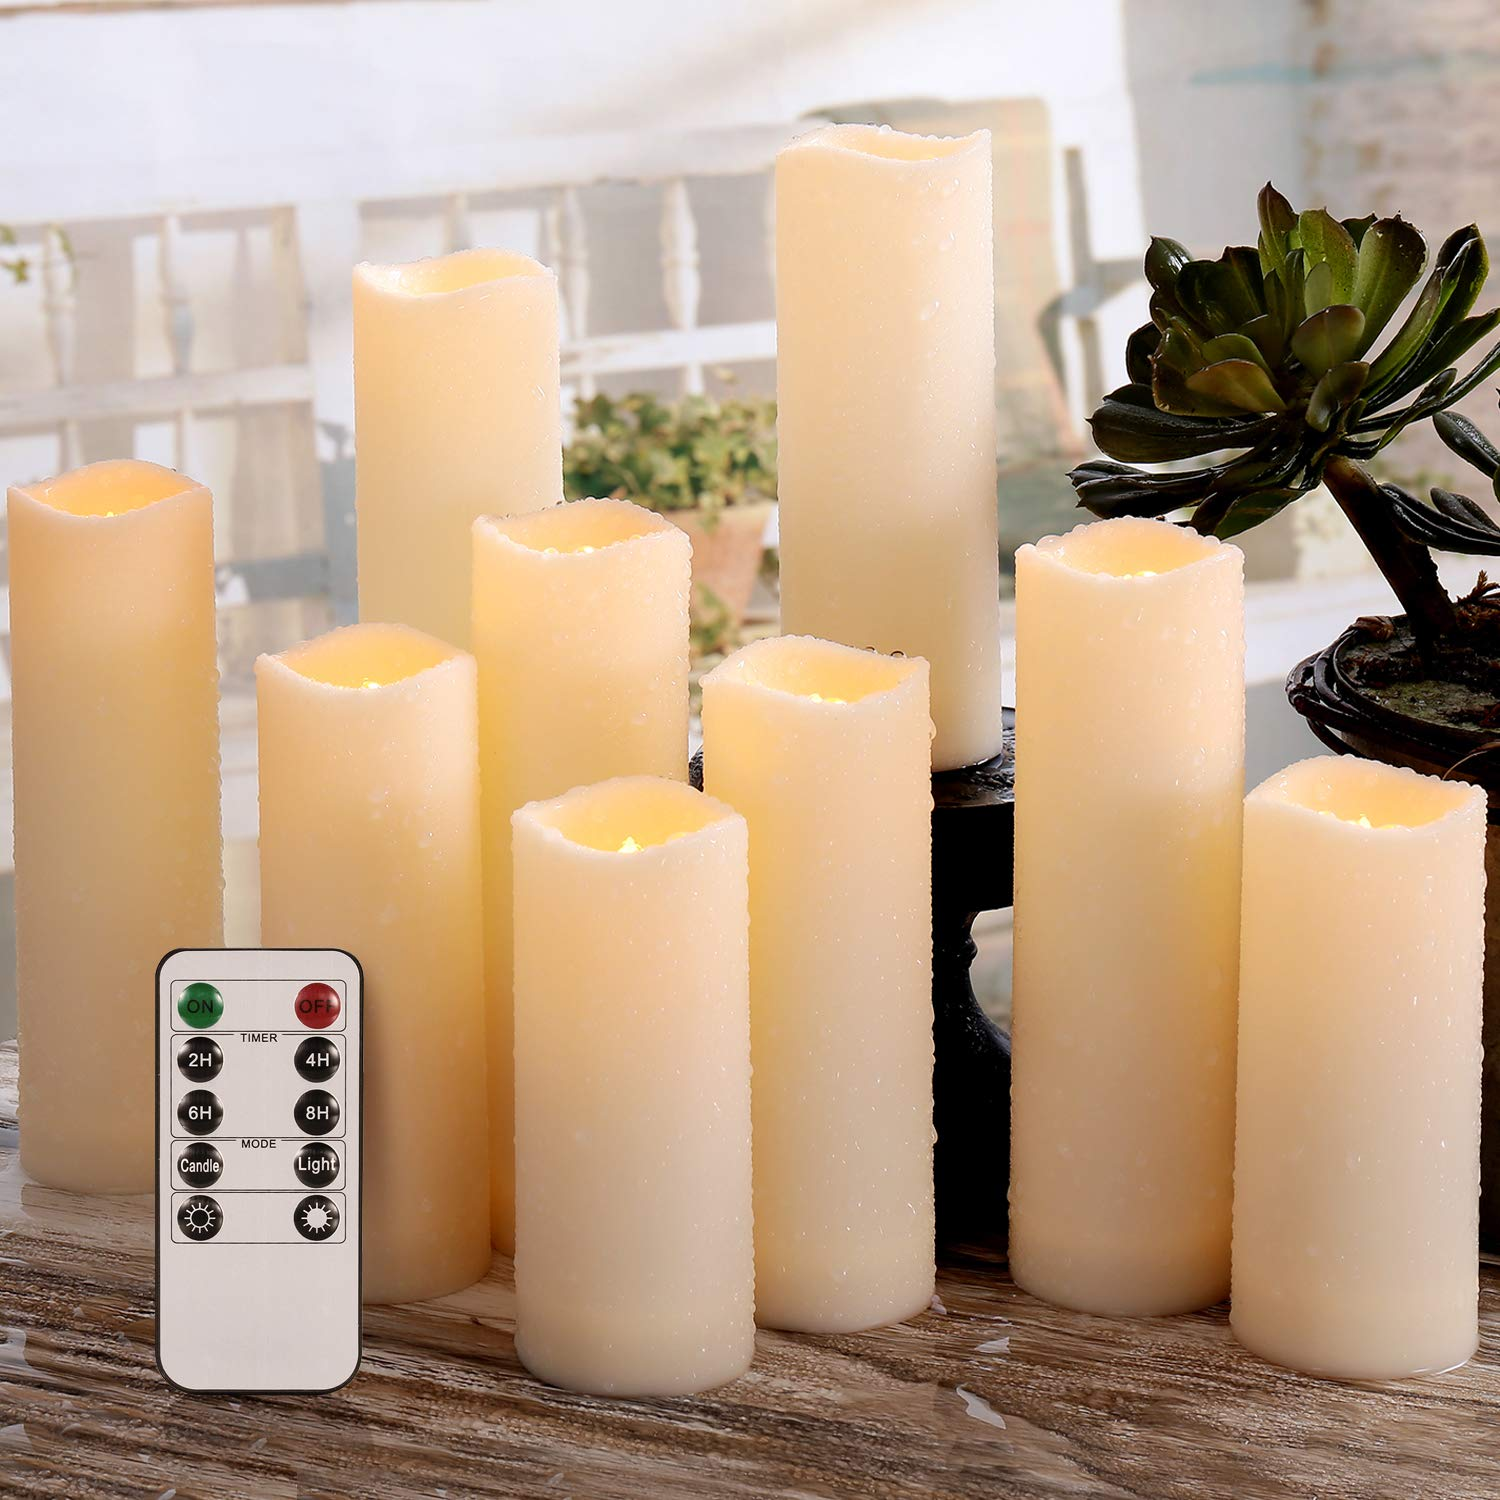 Flameless Candles, Waterproof Outdoor Candles set of 9 ( D 2.2'' X H 5''5''6''6''6''7''7''7''7'' ) LED Candles Battery Operated Candles with Remote Timer, Ivory White by Enido (Image #3)